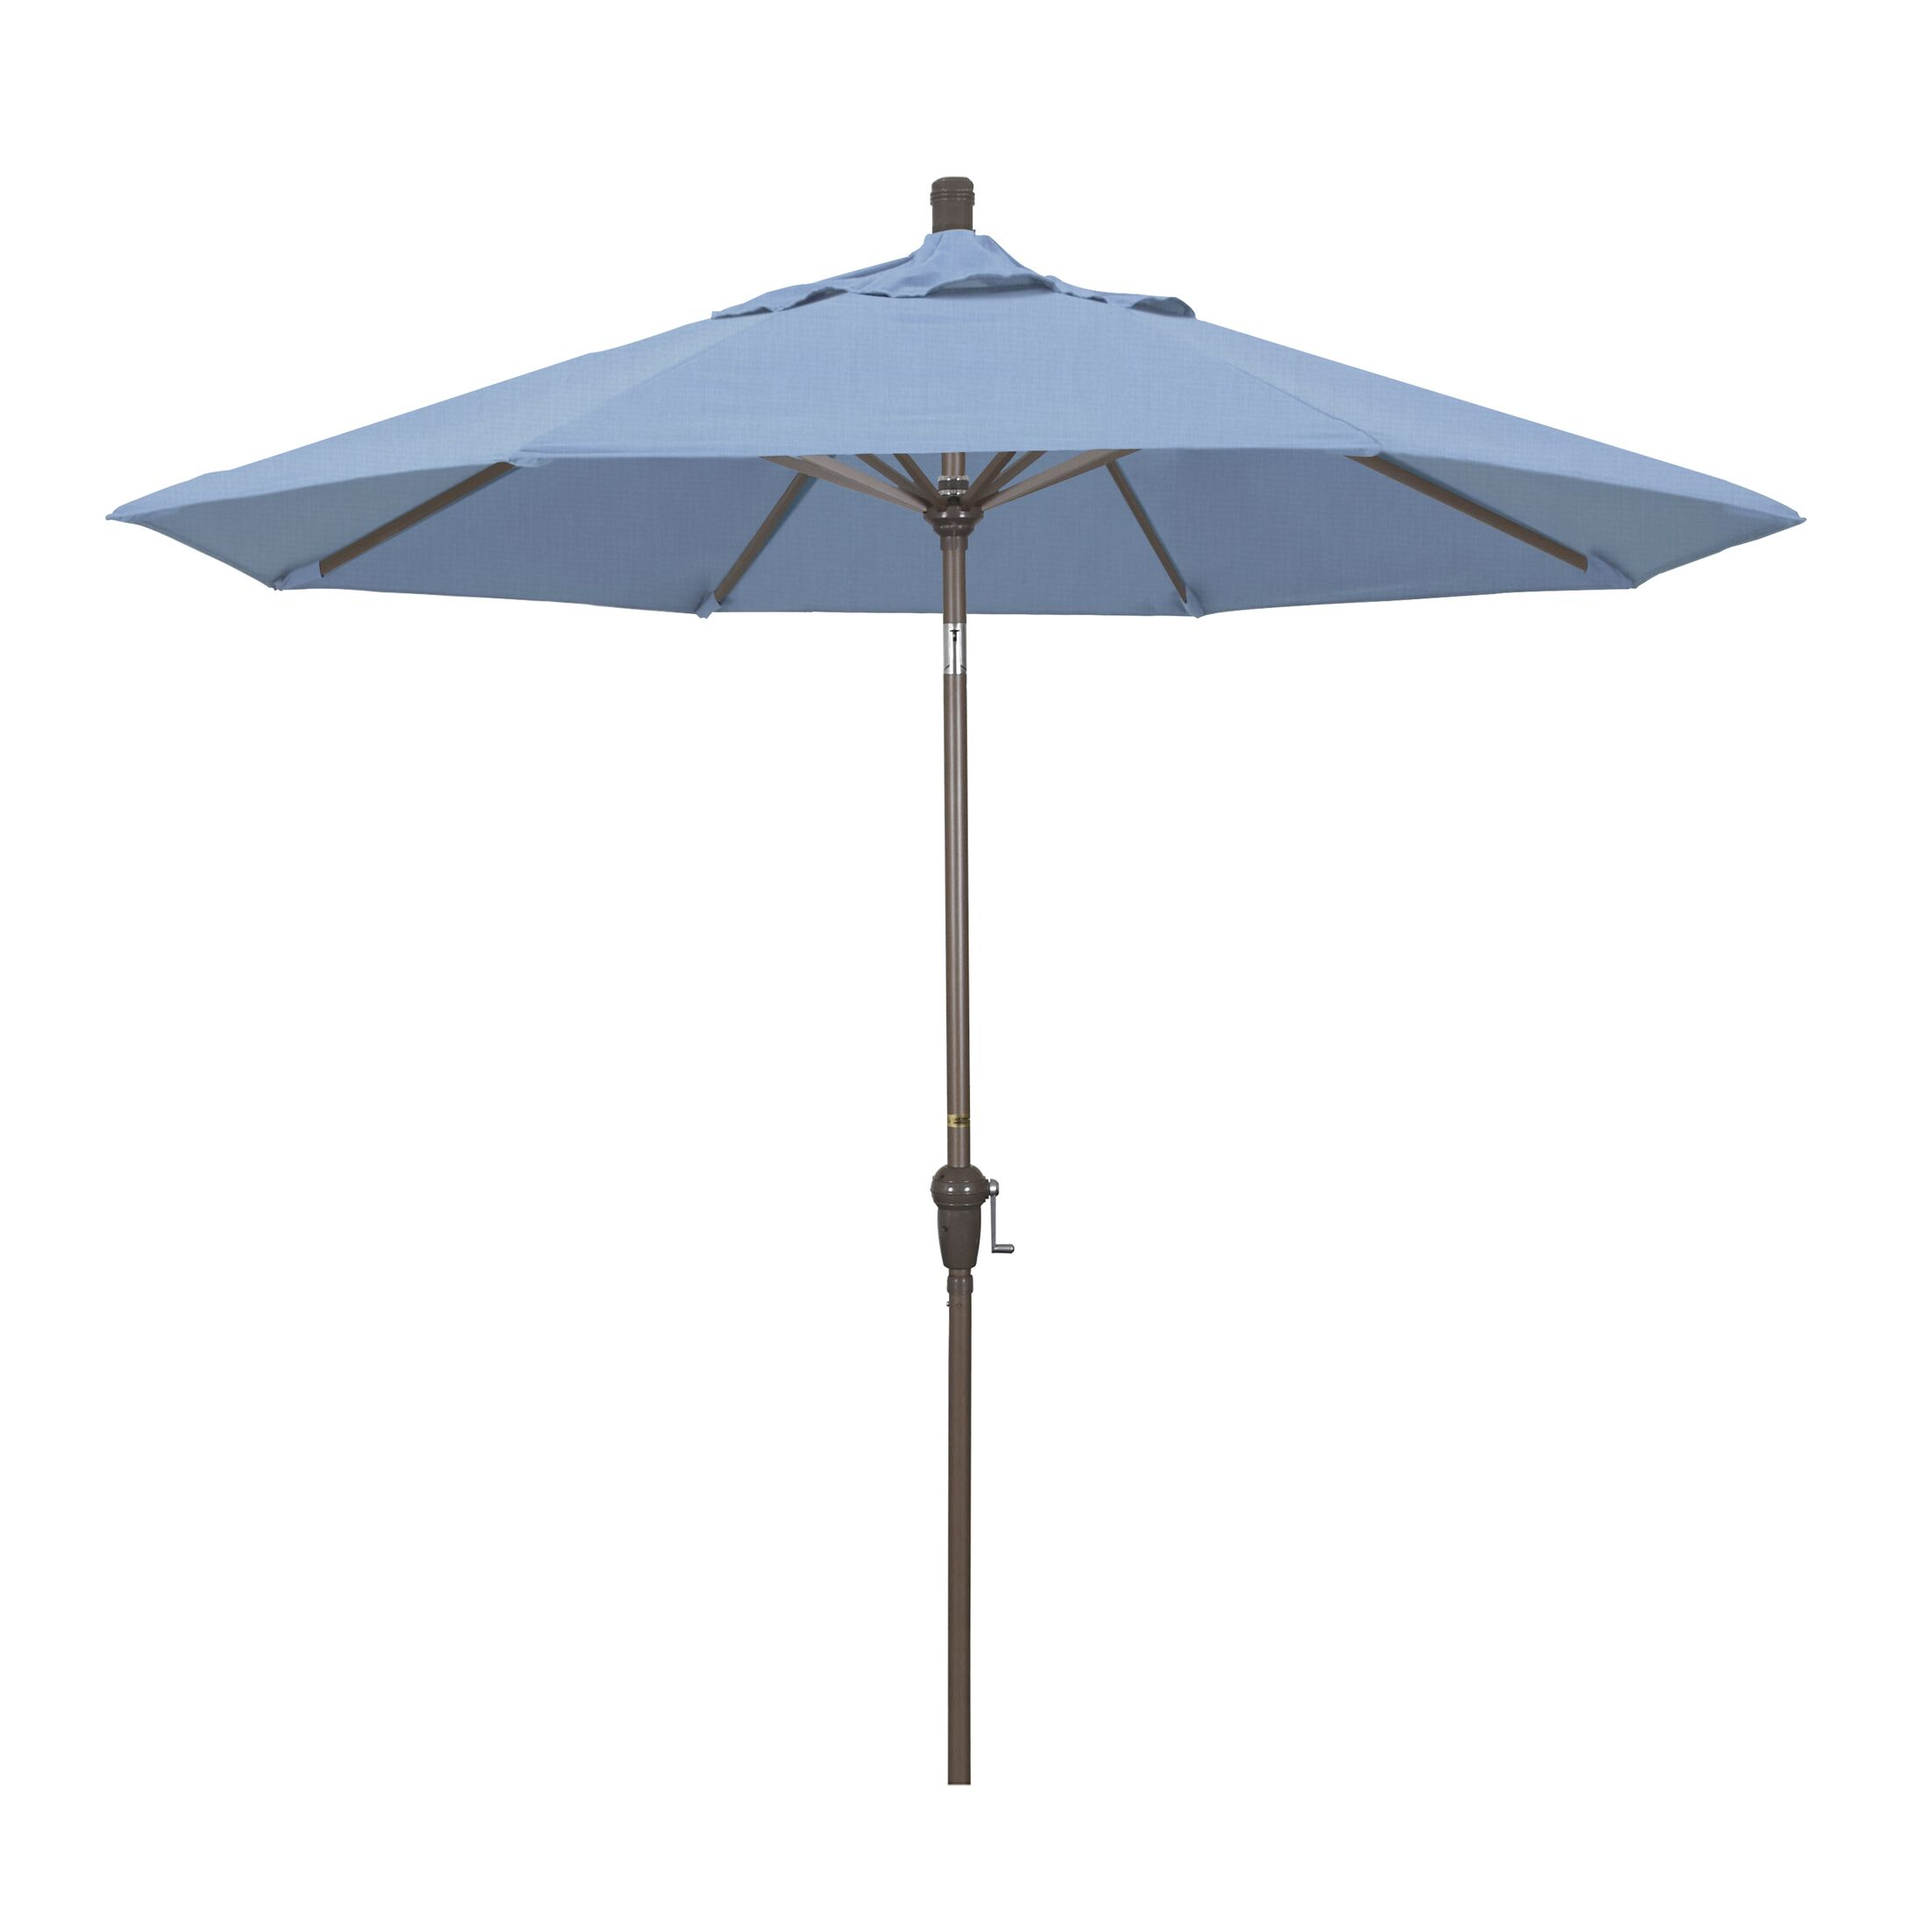 Mullaney 9' Market Umbrella Fabric: Sunbrella - Taupe, Frame Color: Champagne